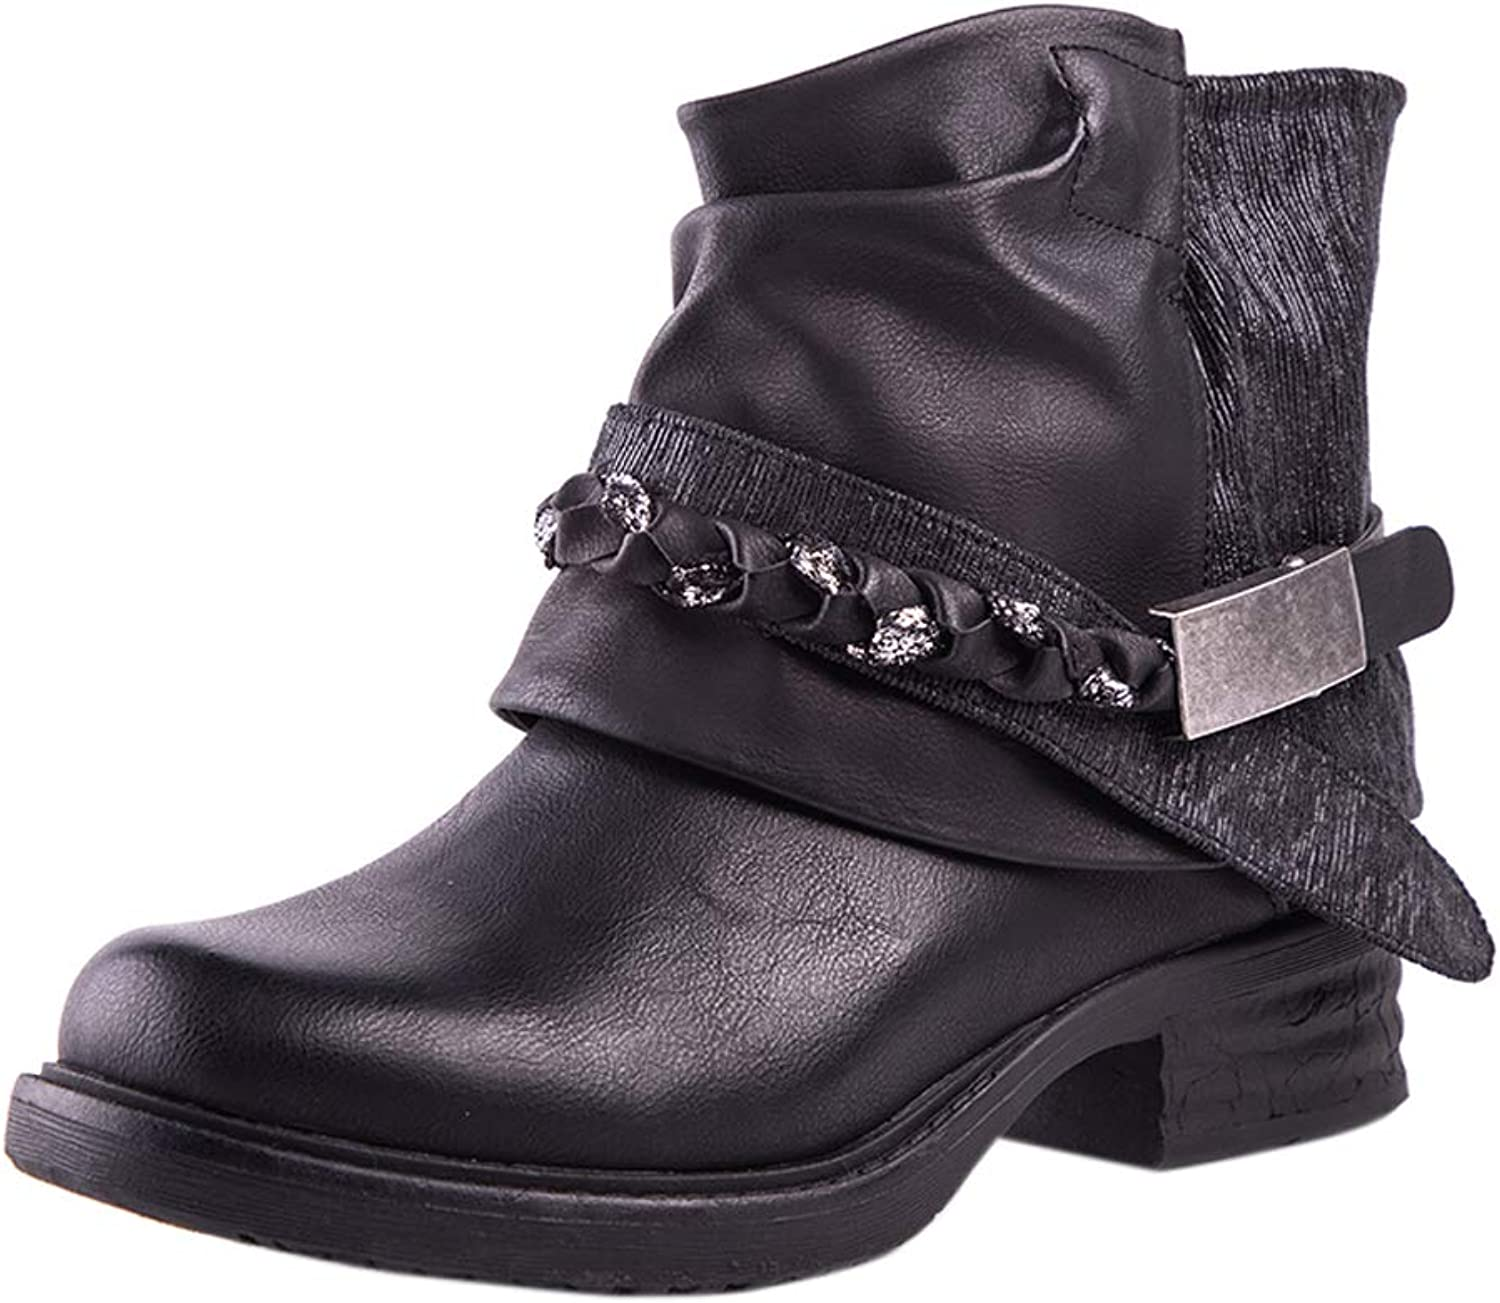 Women Black Leather Ankle Boots Low Heel Round Toe Combat Biker Boots Ladies Short Casual Booties shoes